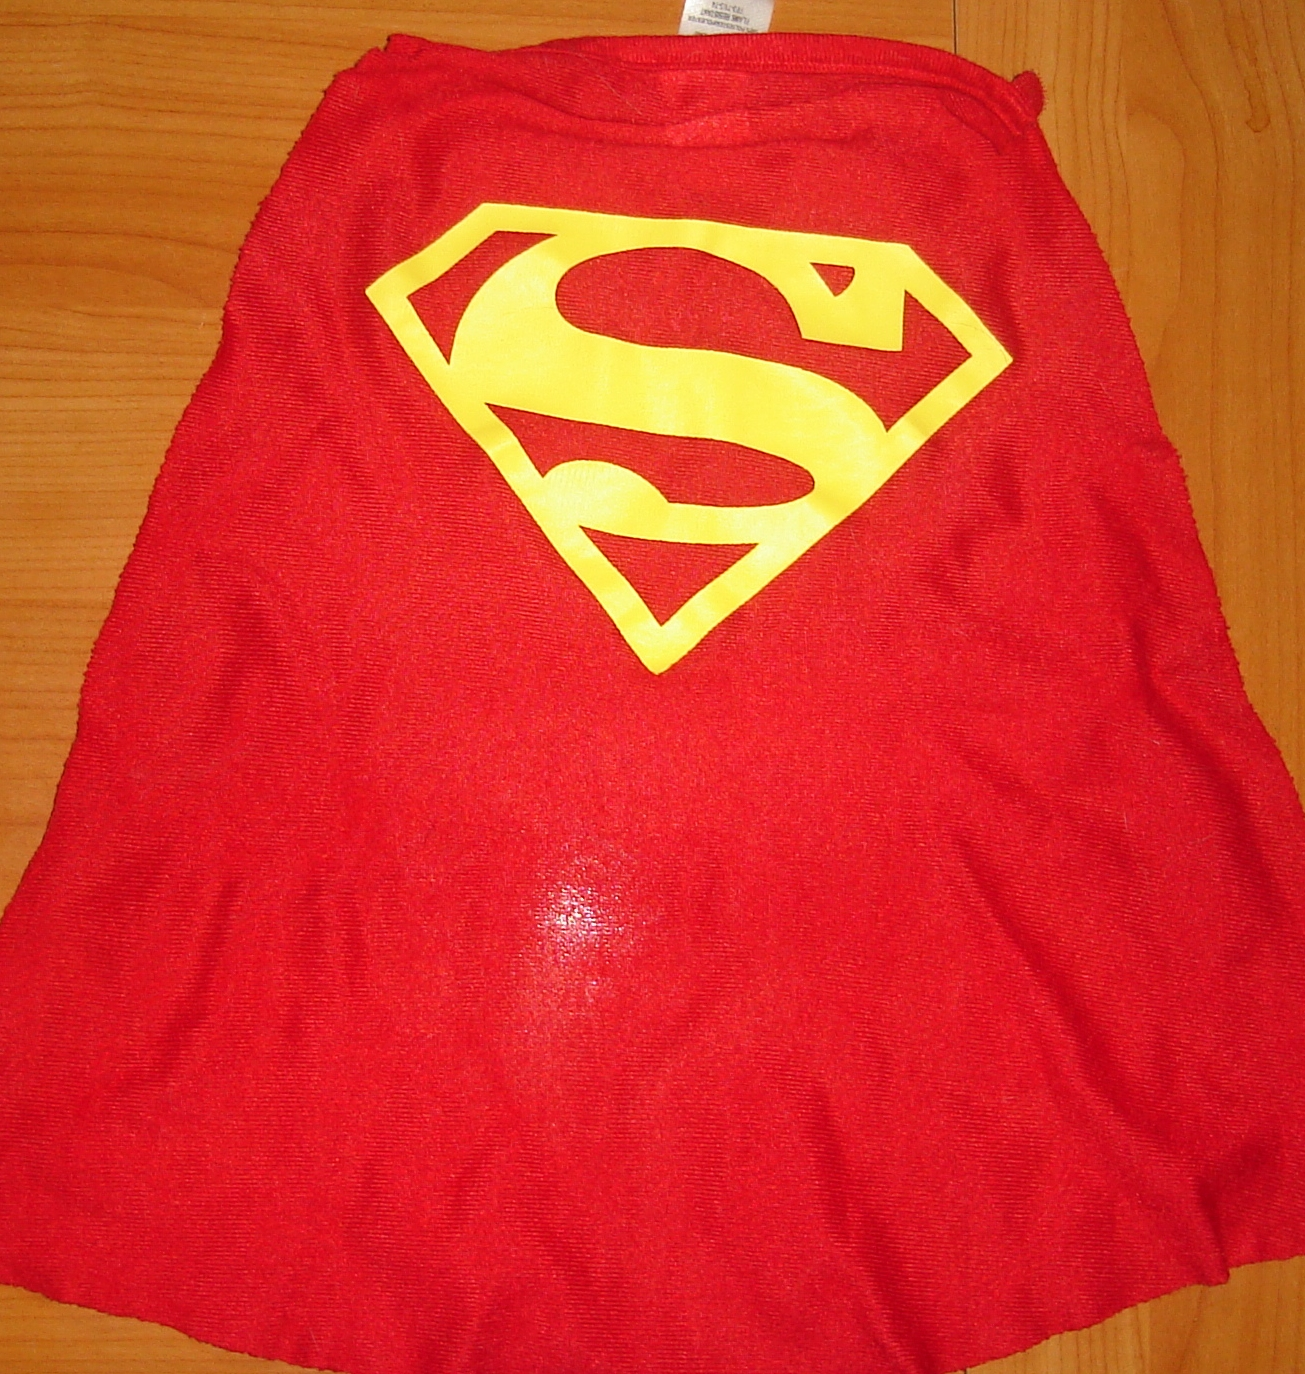 A facsimile of Superman's cape